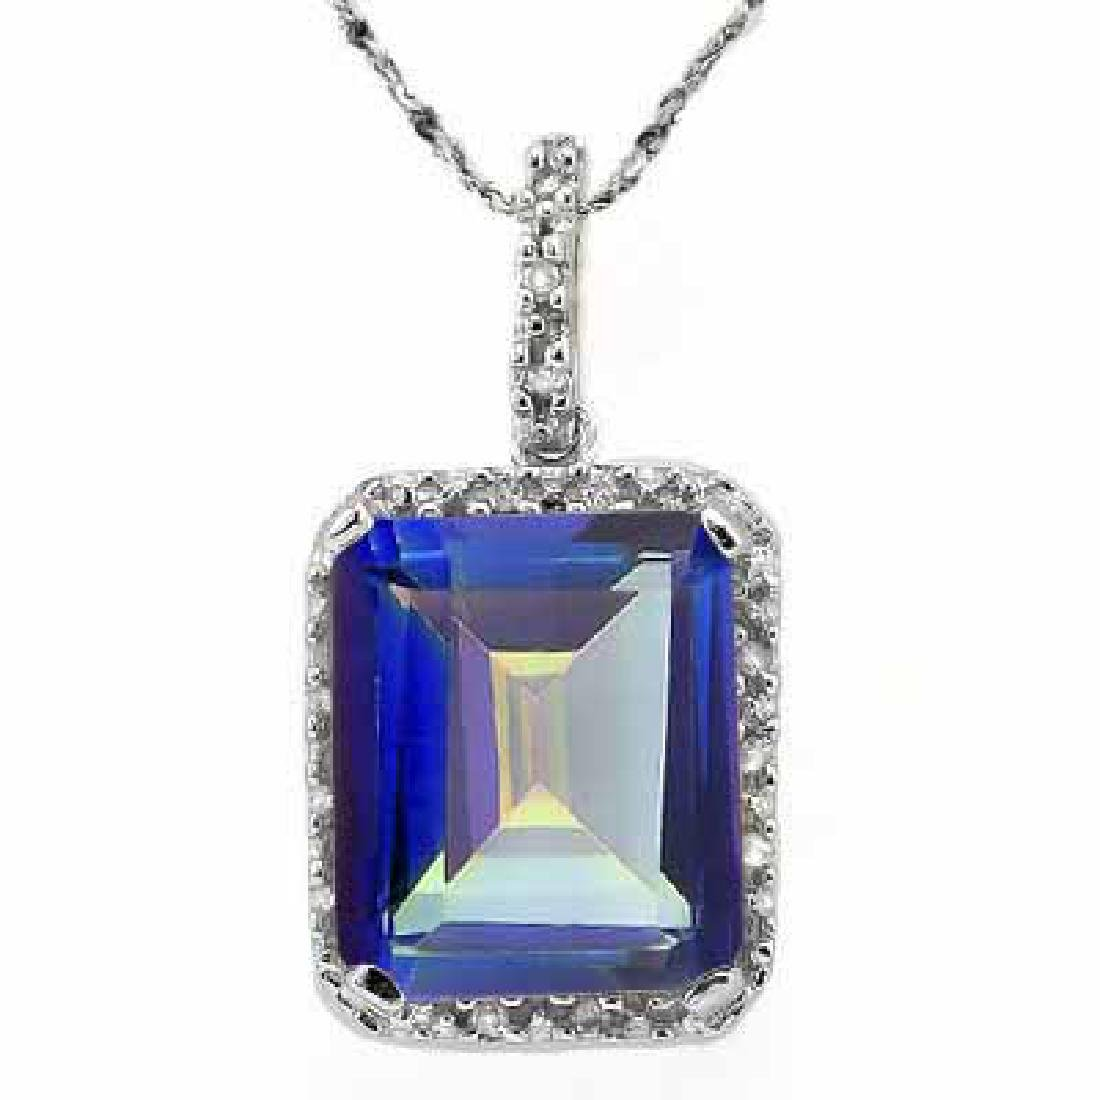 5.14 CARAT TW (3 PSC) BLUE MYSTIC GEMSTONE & GENUINE DI